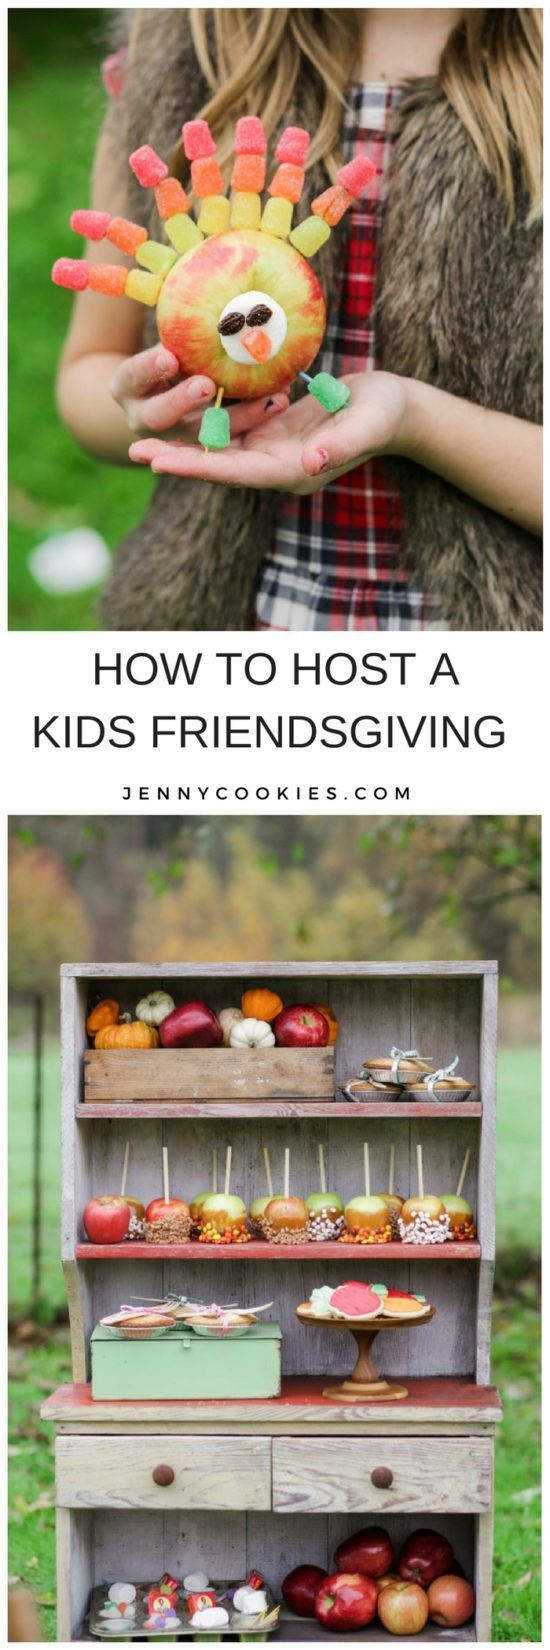 How to Host a Friendsgiving Party | thanksgiving party